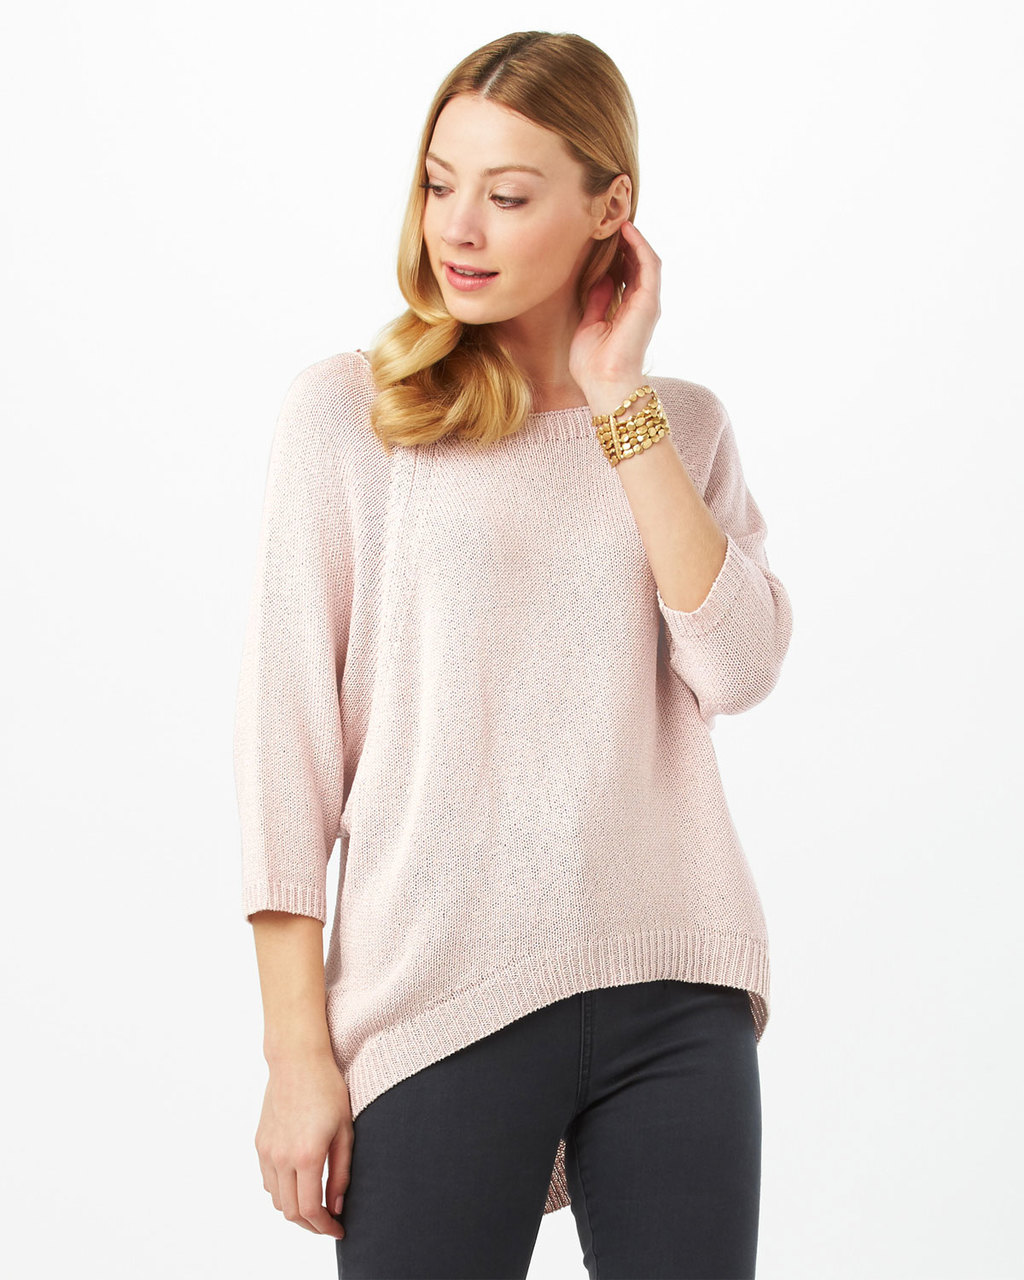 Bianca Batwing Jumper - pattern: plain; length: below the bottom; style: standard; predominant colour: blush; occasions: casual; fibres: acrylic - mix; fit: loose; neckline: crew; sleeve length: 3/4 length; sleeve style: standard; texture group: knits/crochet; pattern type: fabric; season: s/s 2016